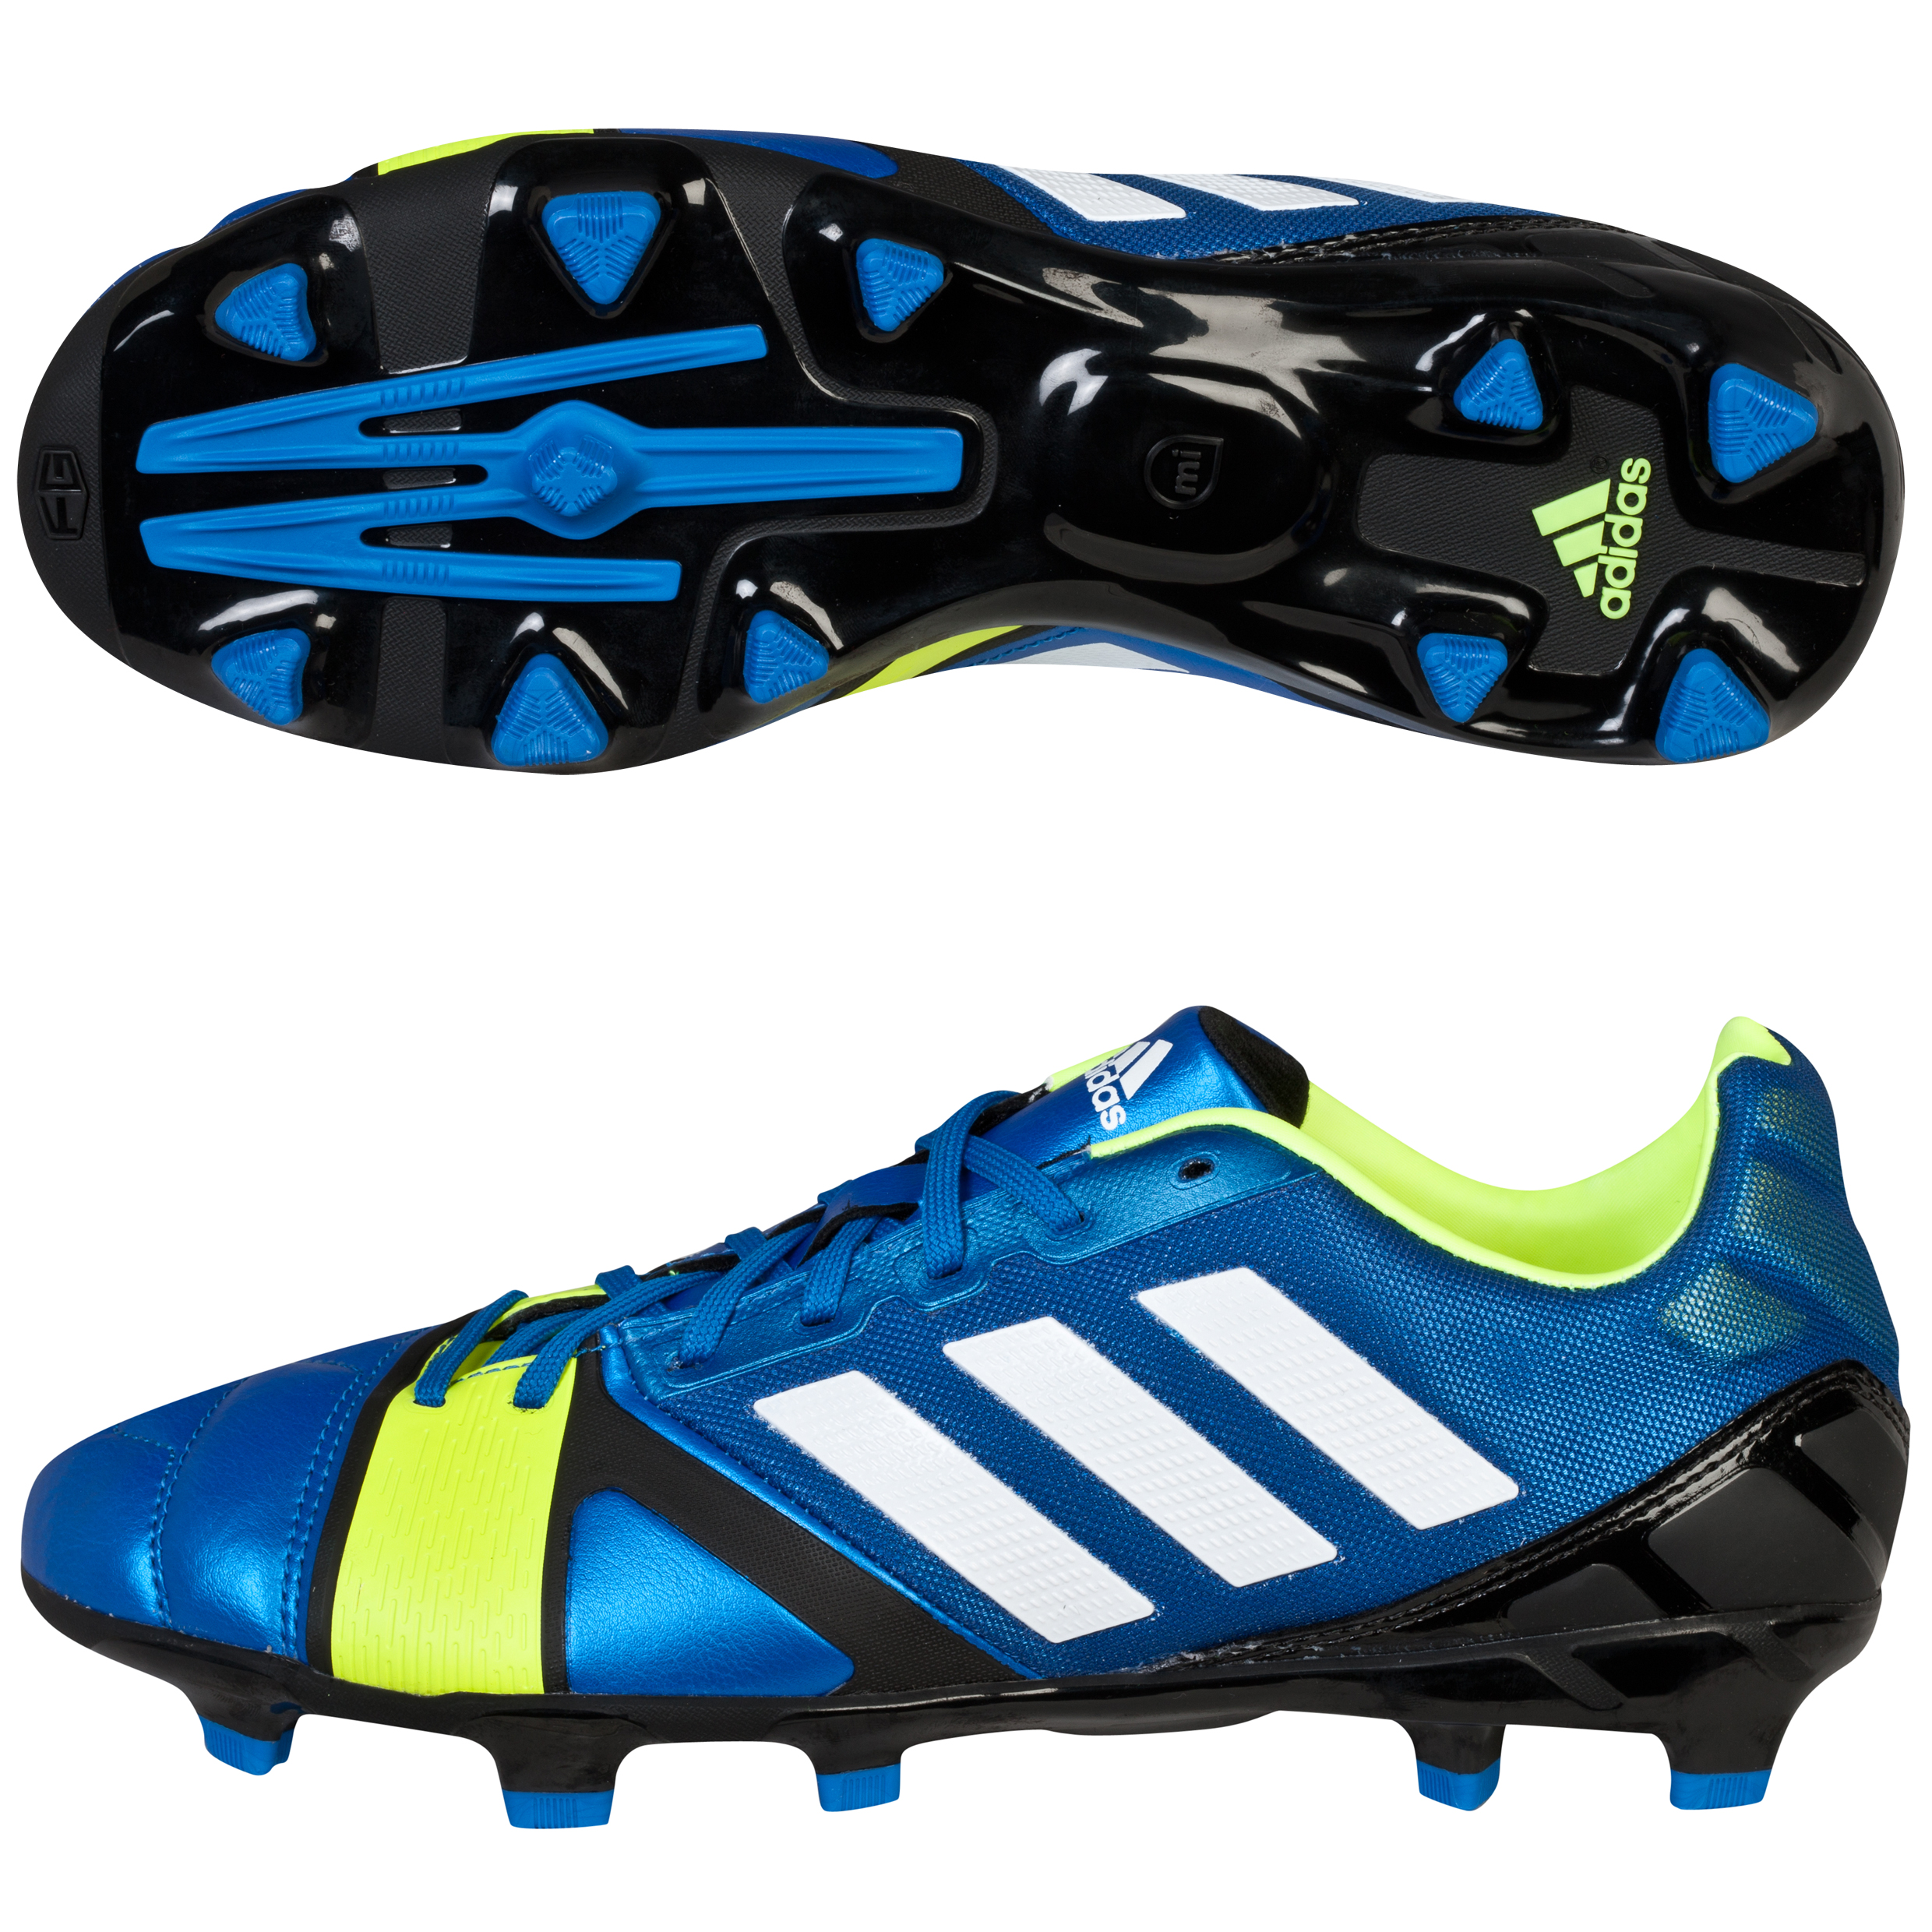 Adidas Nitrocharge 2.0 TRX Firm Ground Football Boots Blue